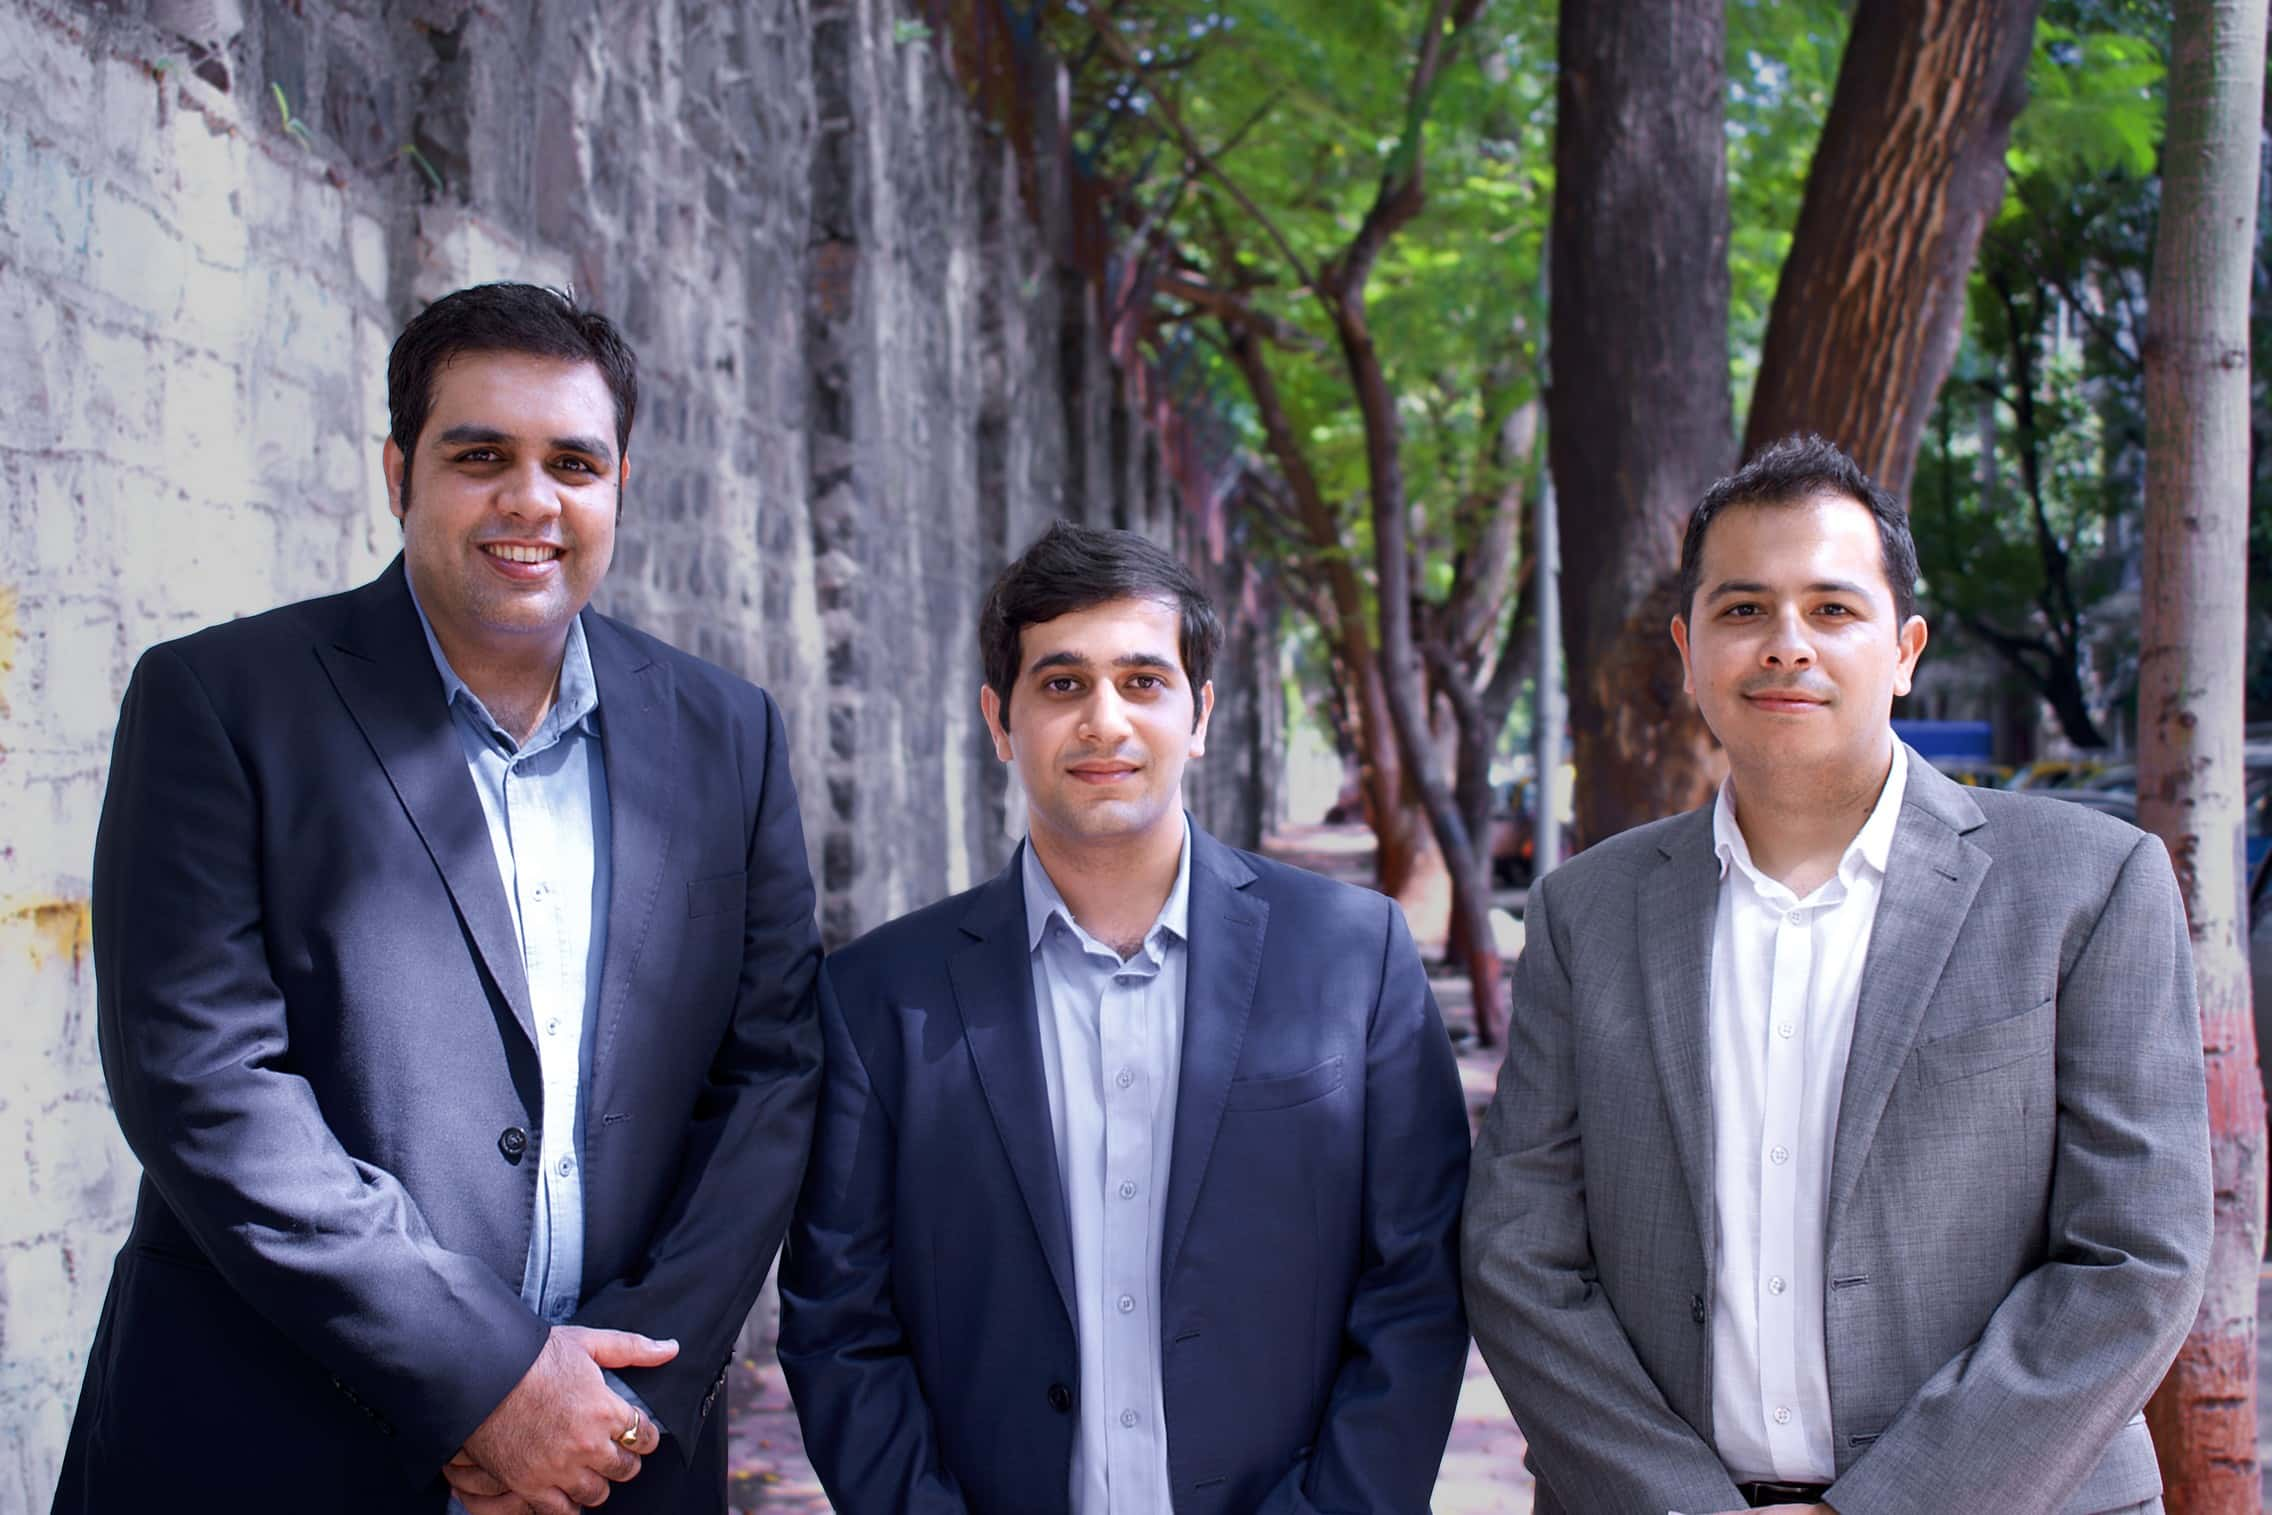 (L-R) Freightwalla co-founders Bharat Thanvi, Sanjay Bhatia and Punit Java